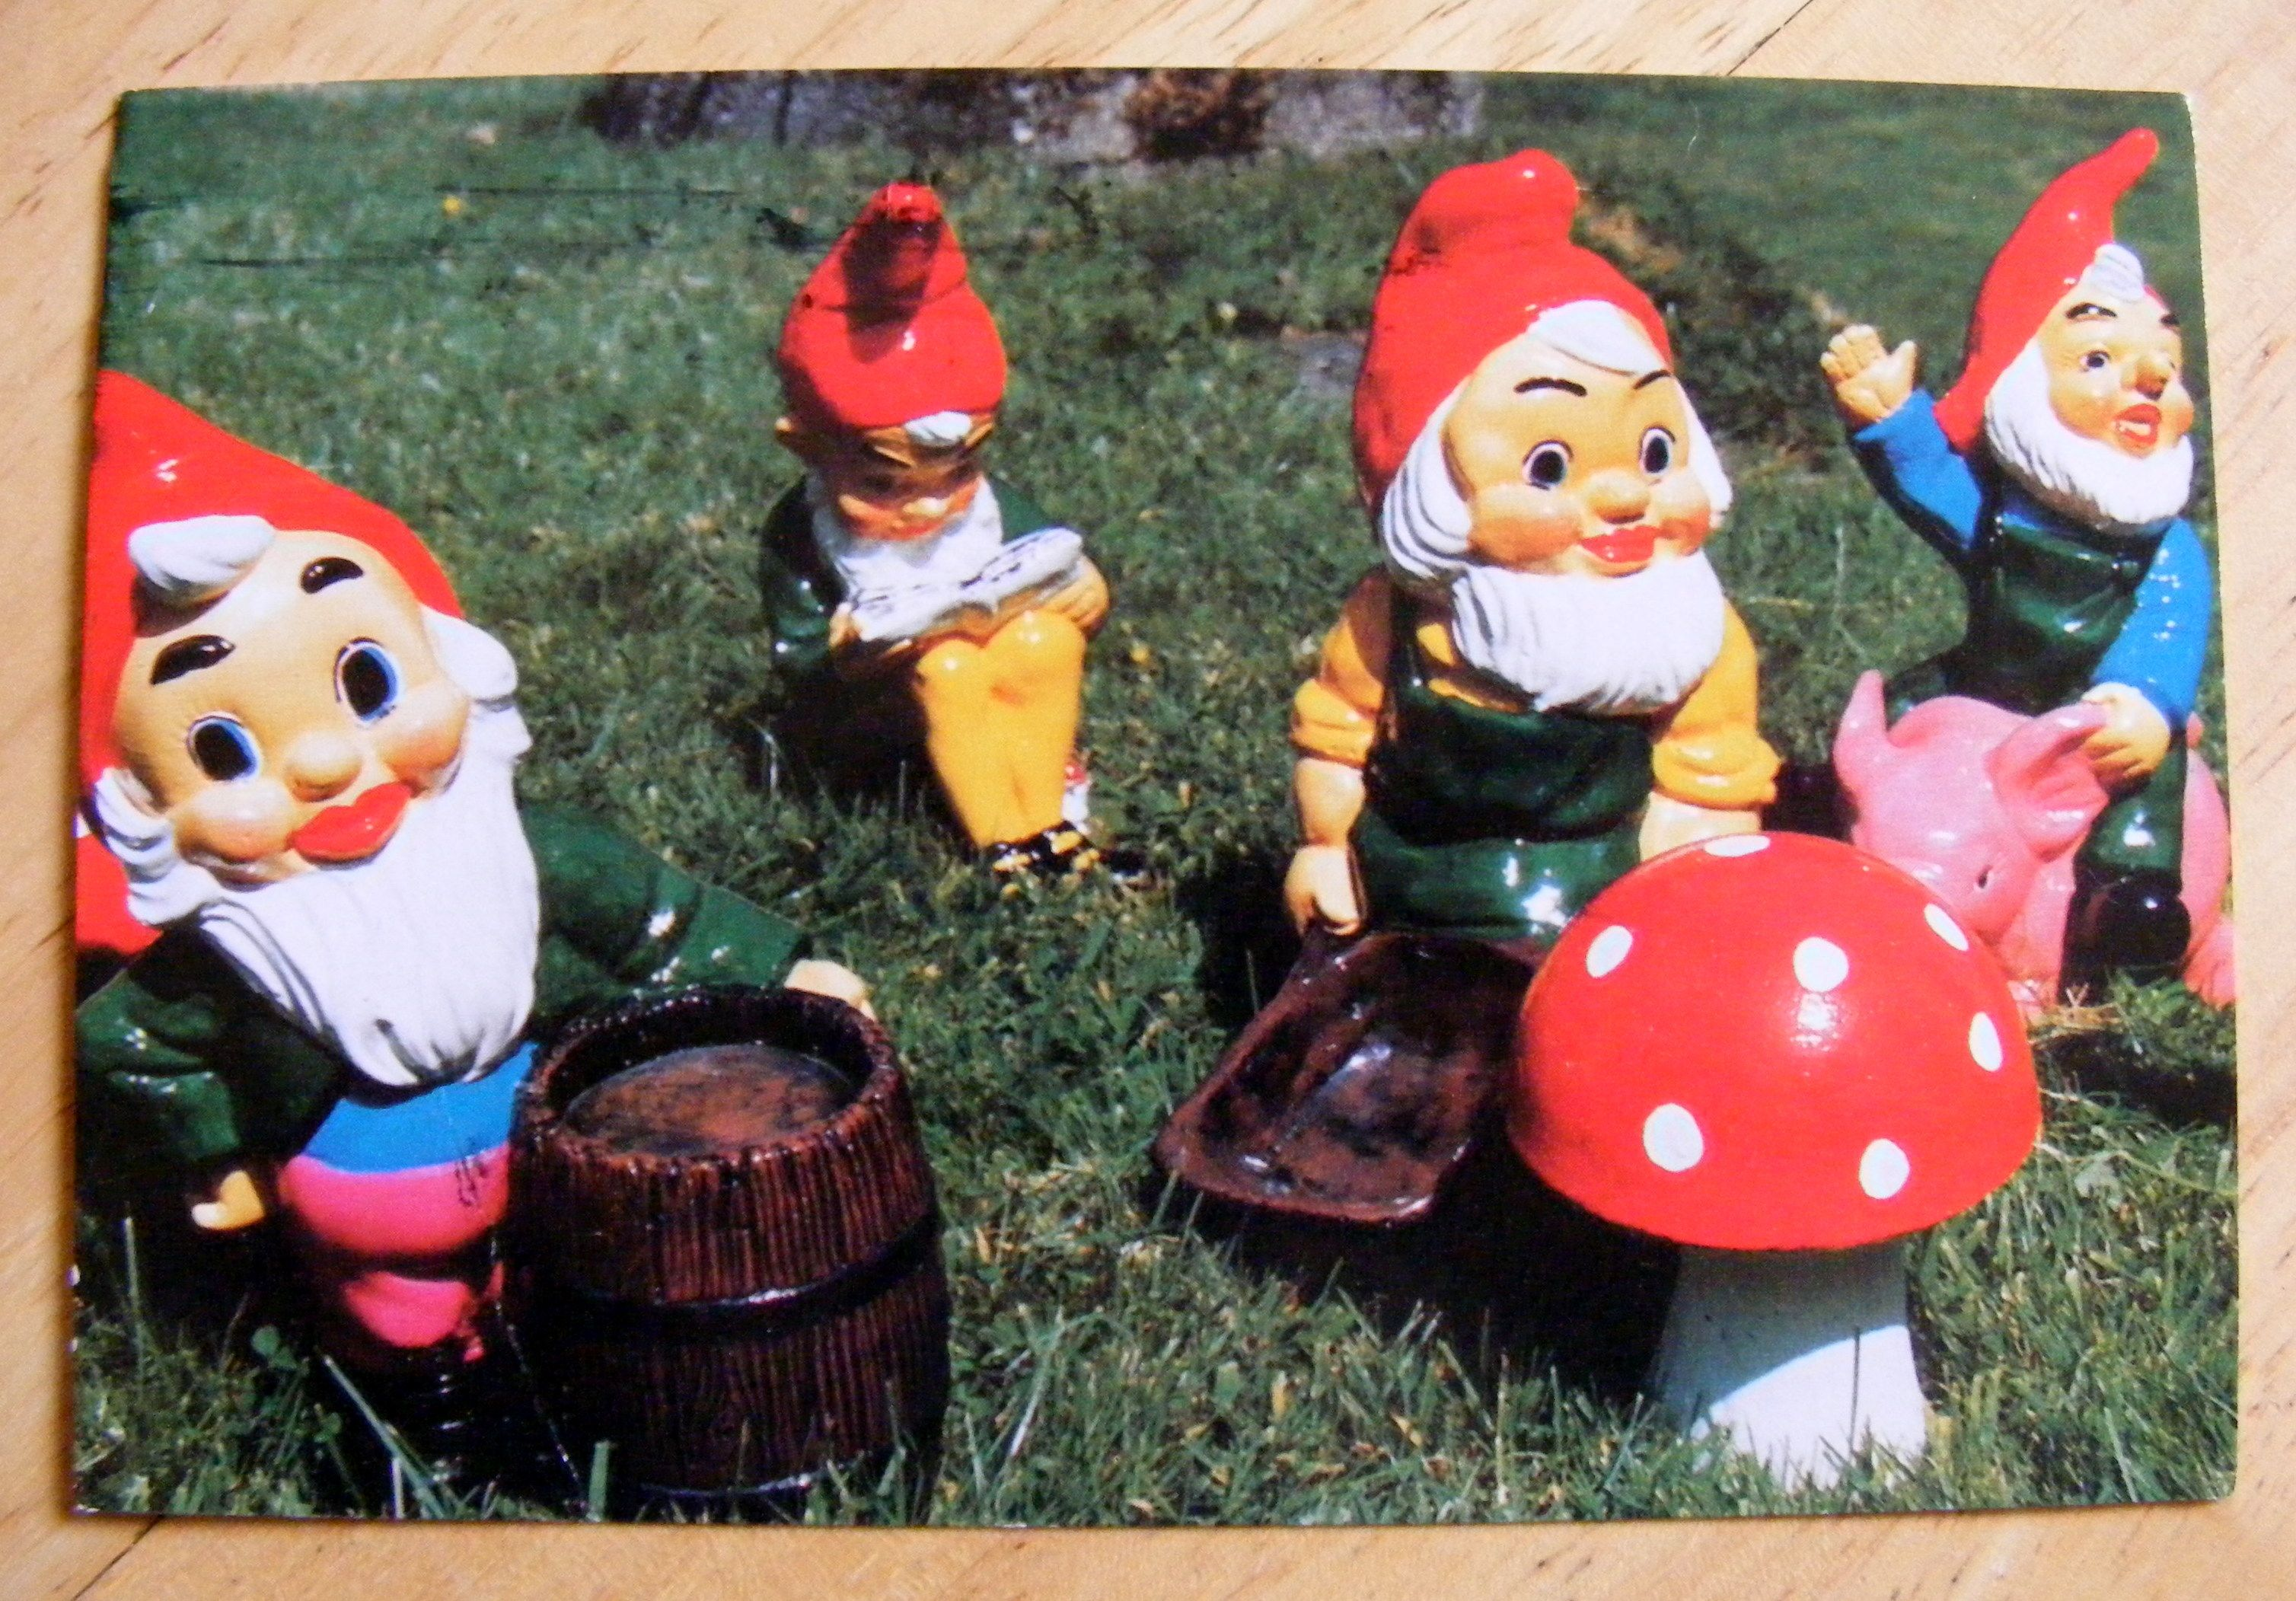 a postcard from The Gnome Reserve (North Devon, UK http